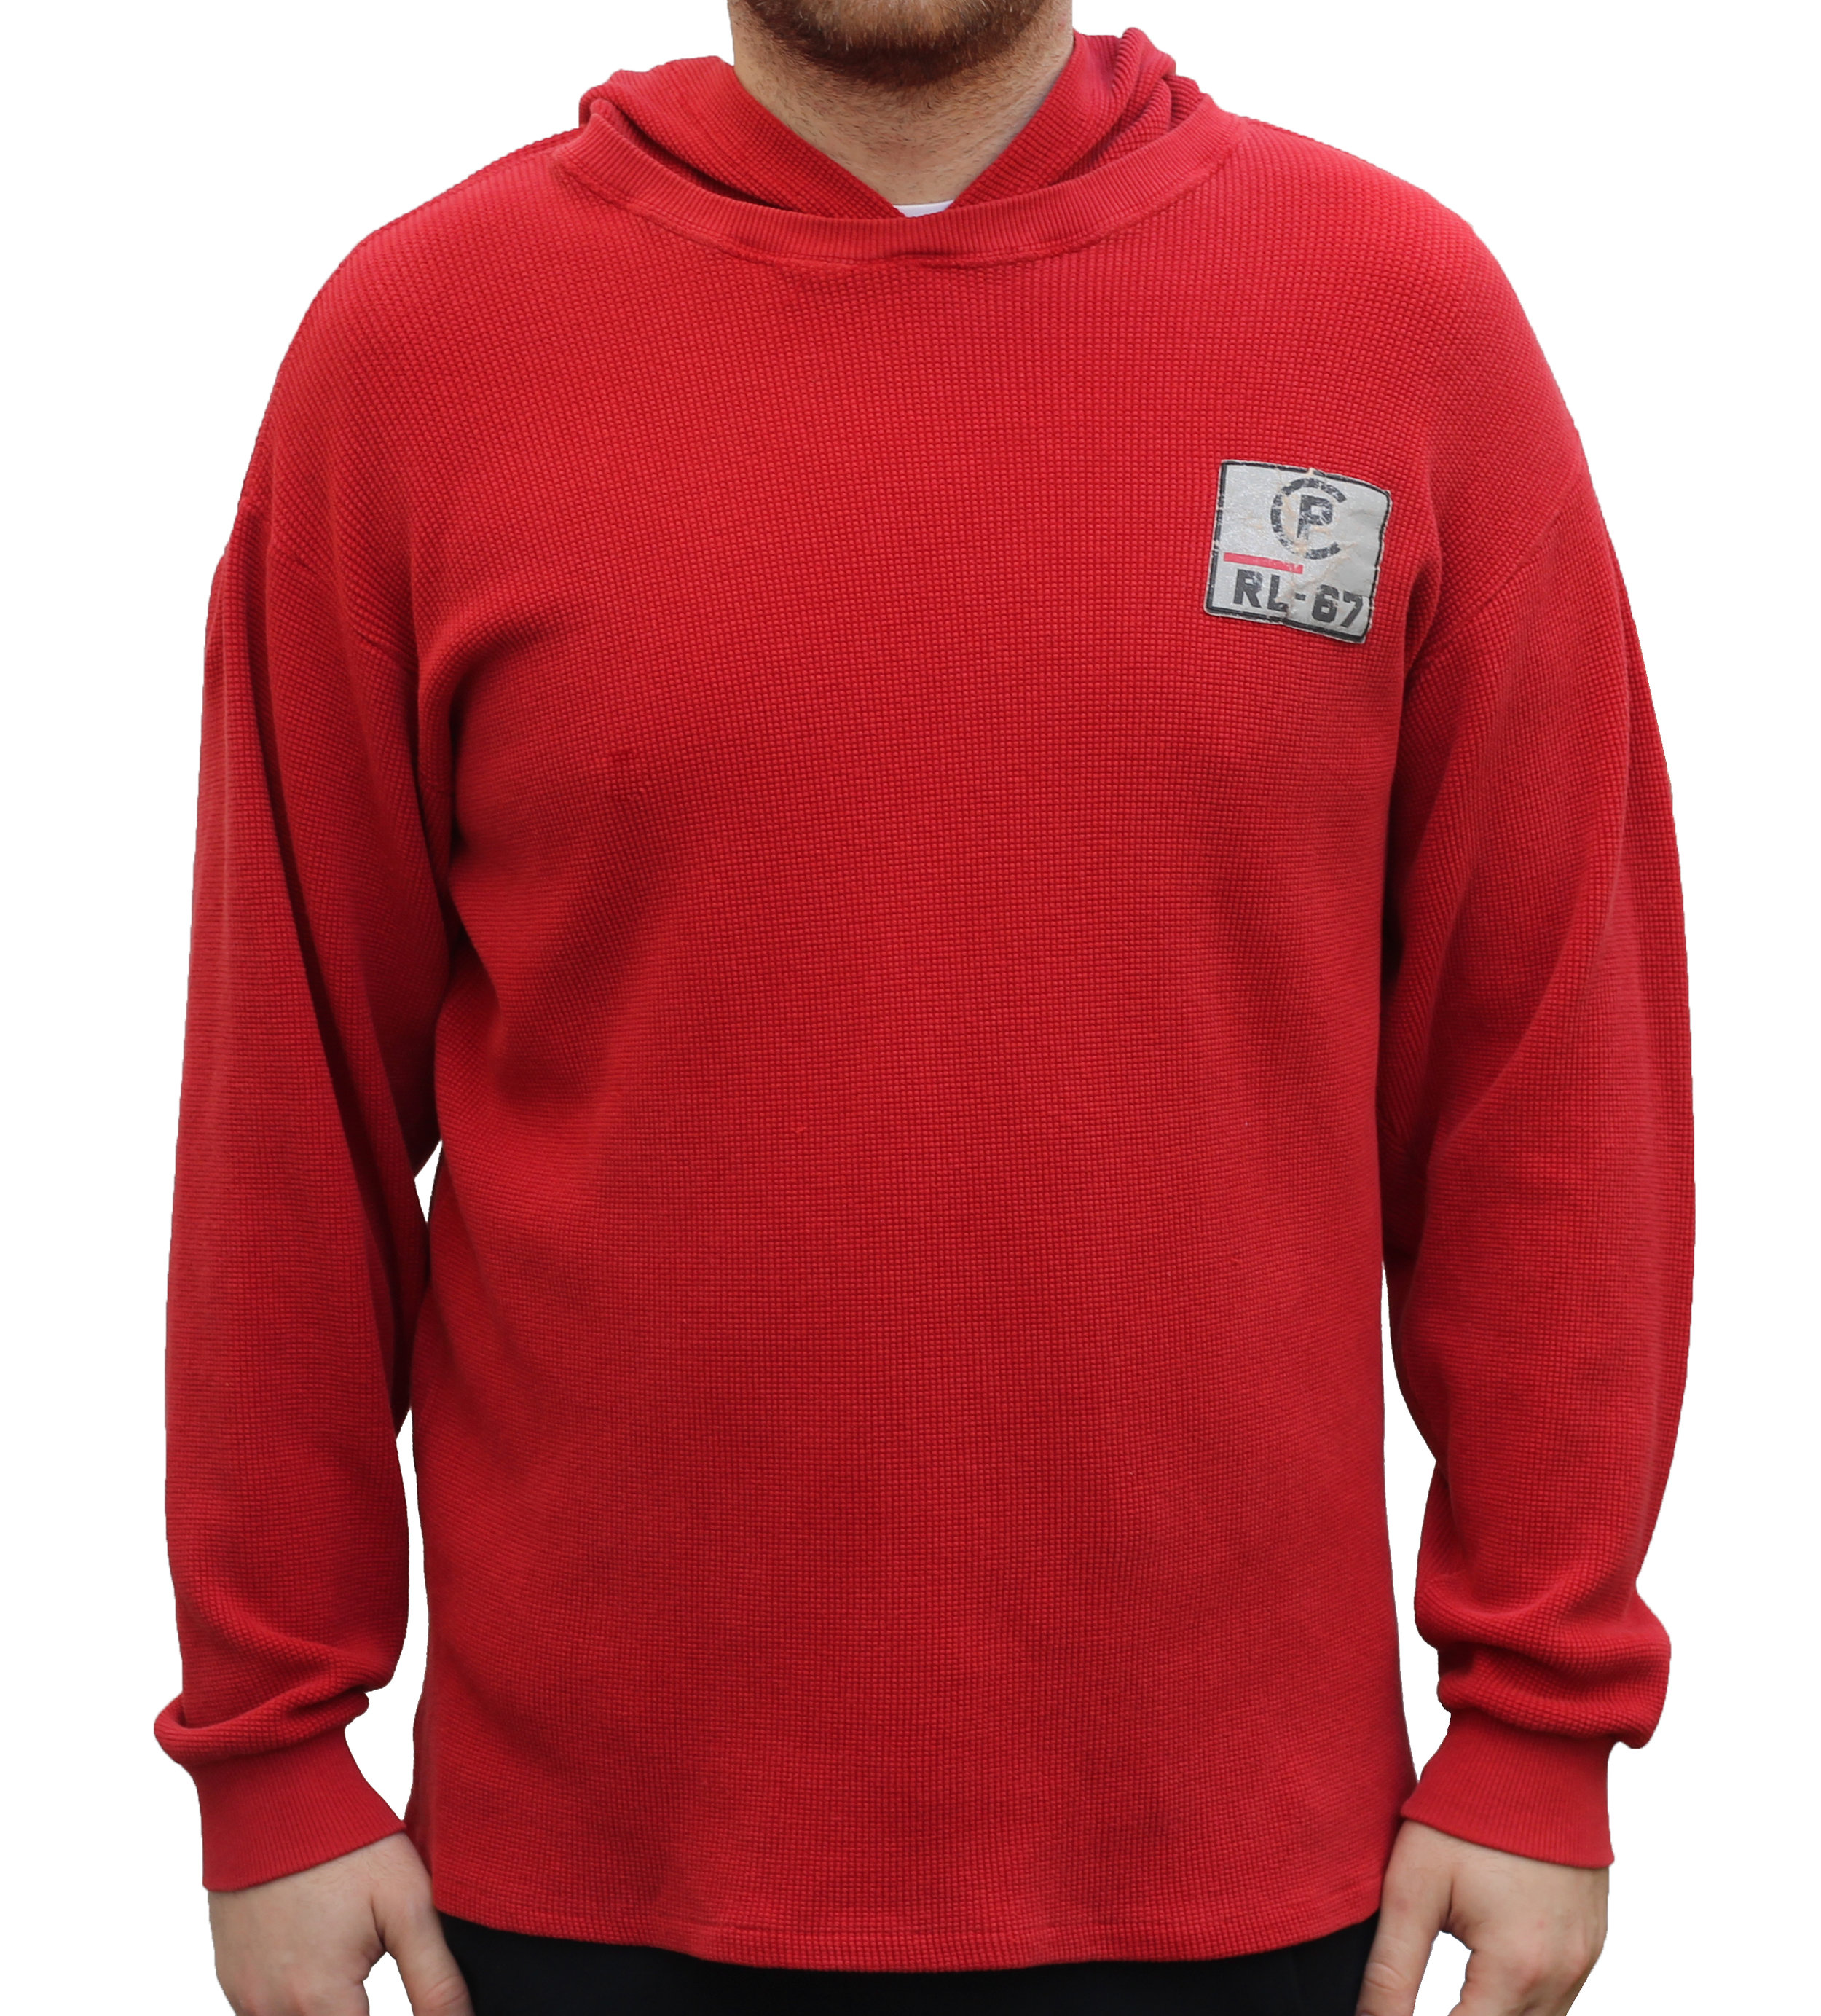 Vintage Polo Ralph Lauren CP RL-67 Red Thermal Hoodie (Size XL)